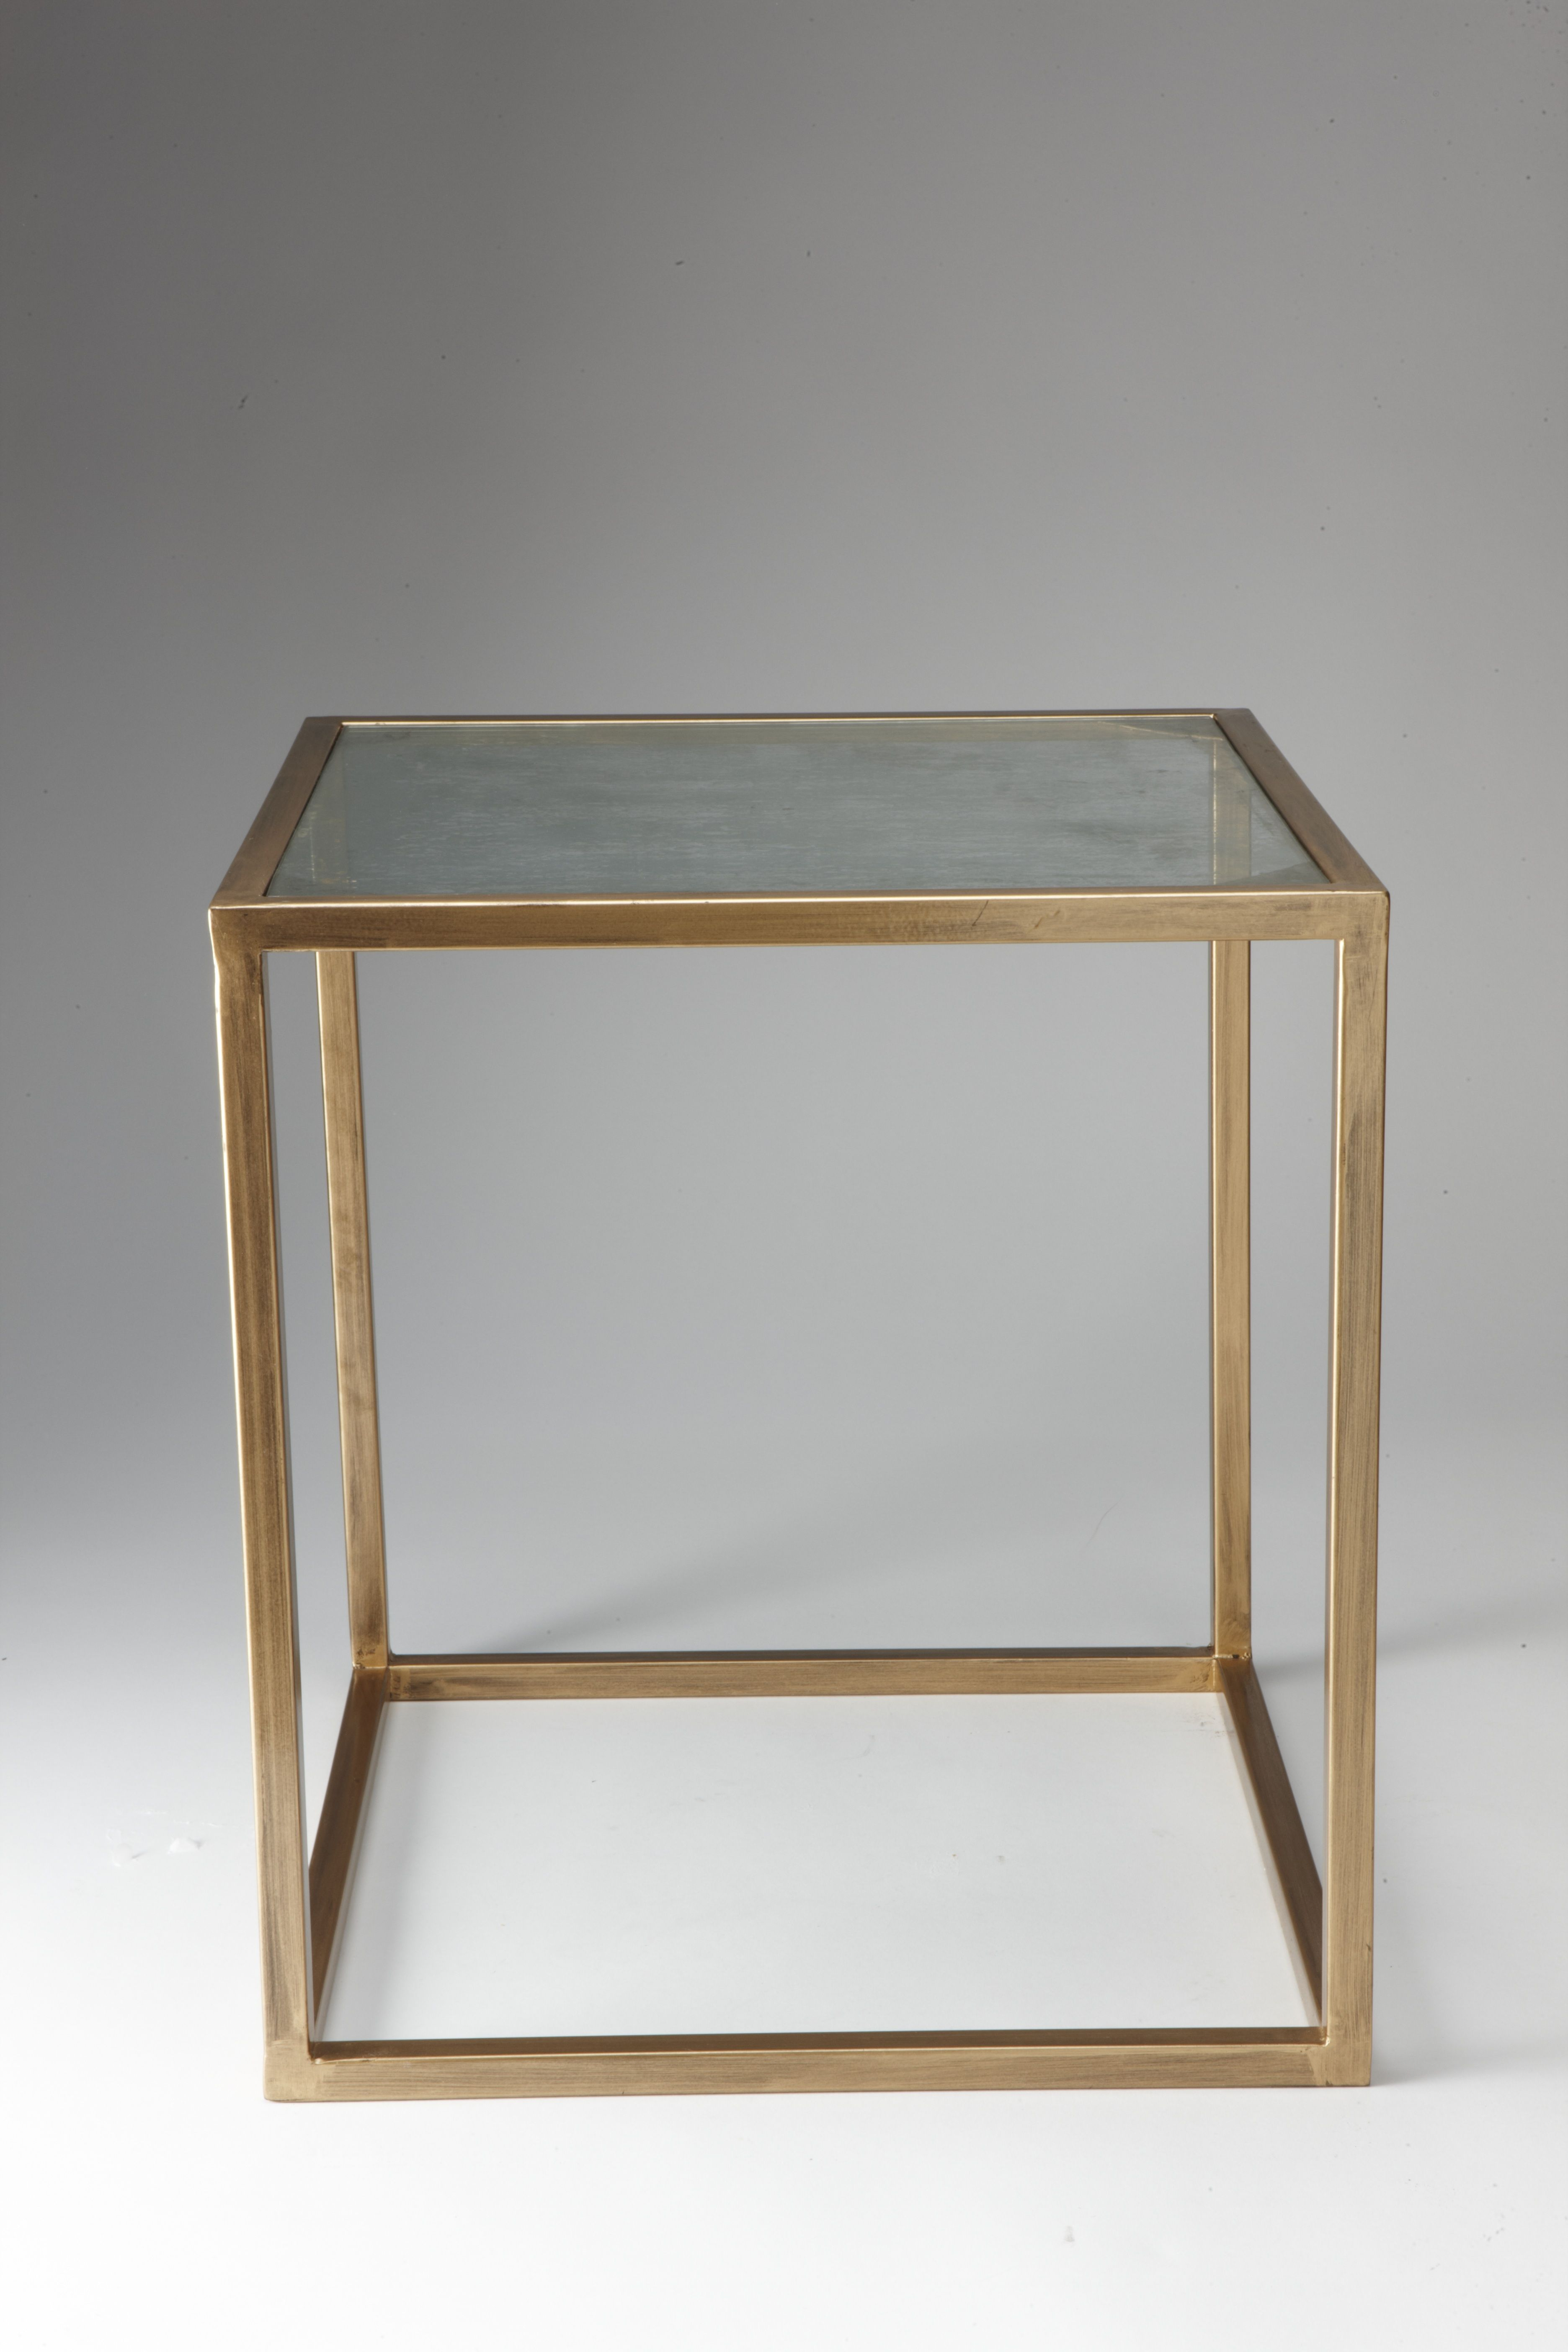 nate berkus accent table gold and antiqued glass decorative tables living room winter patio furniture covers hallway drawers painting pine lamp audio west elm industrial windham